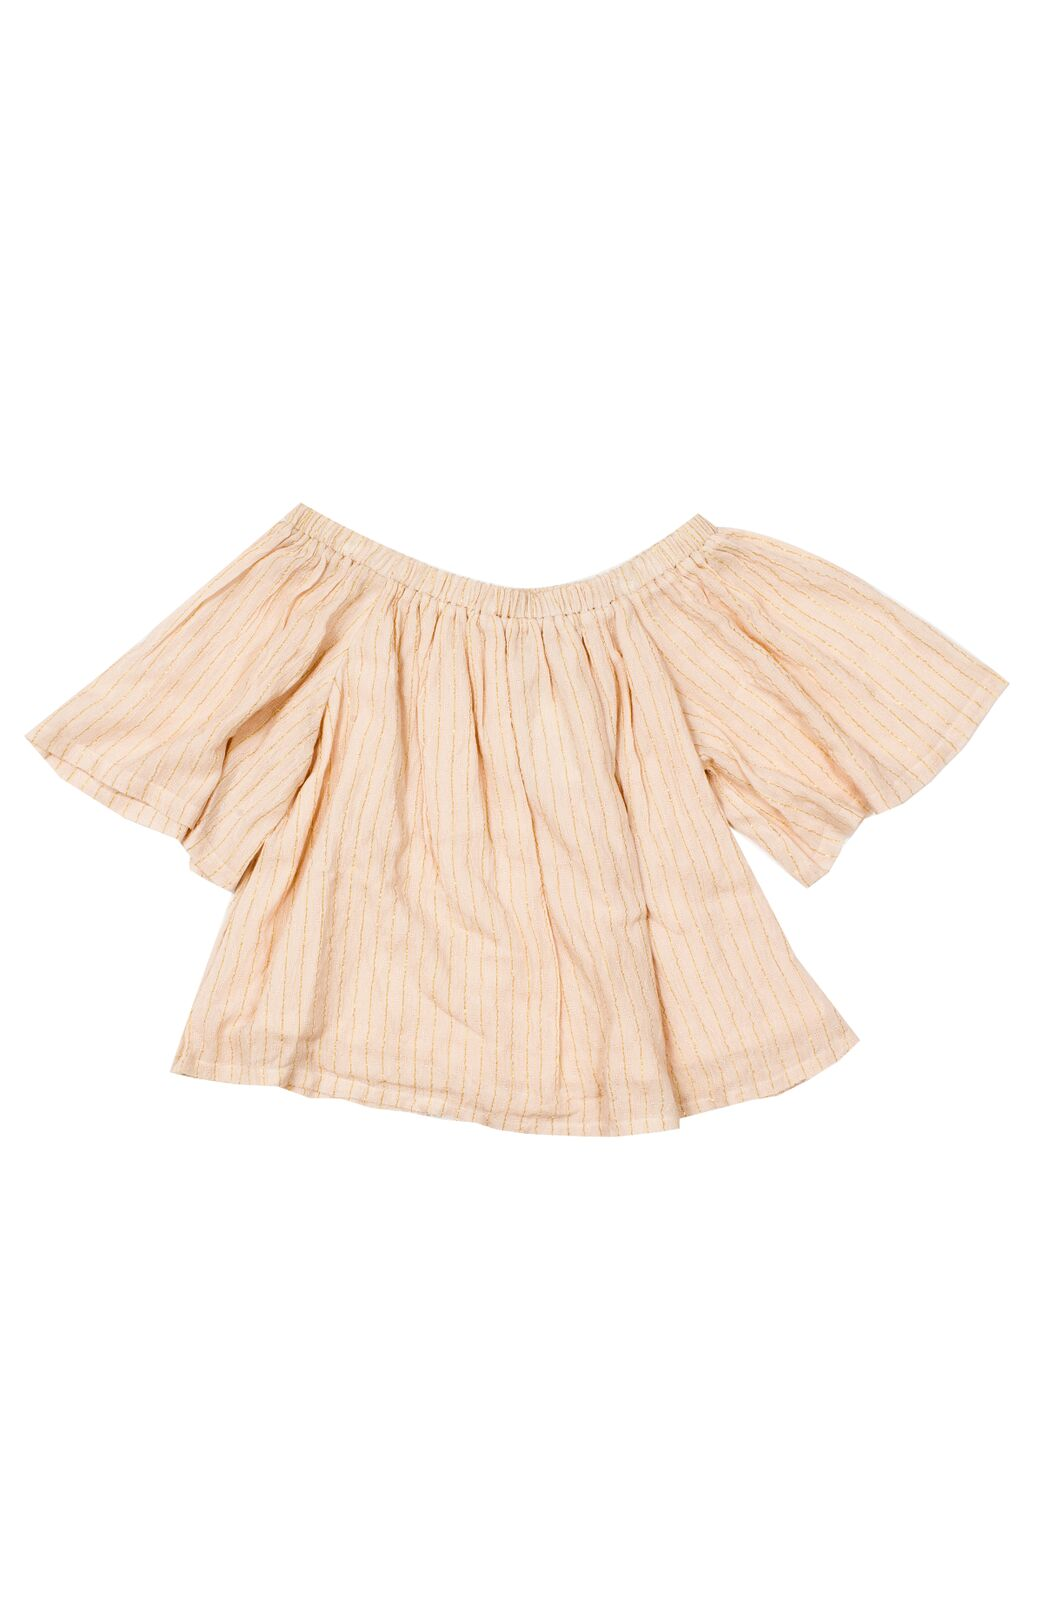 Bowie James Milky Way Woven Top - Stardust